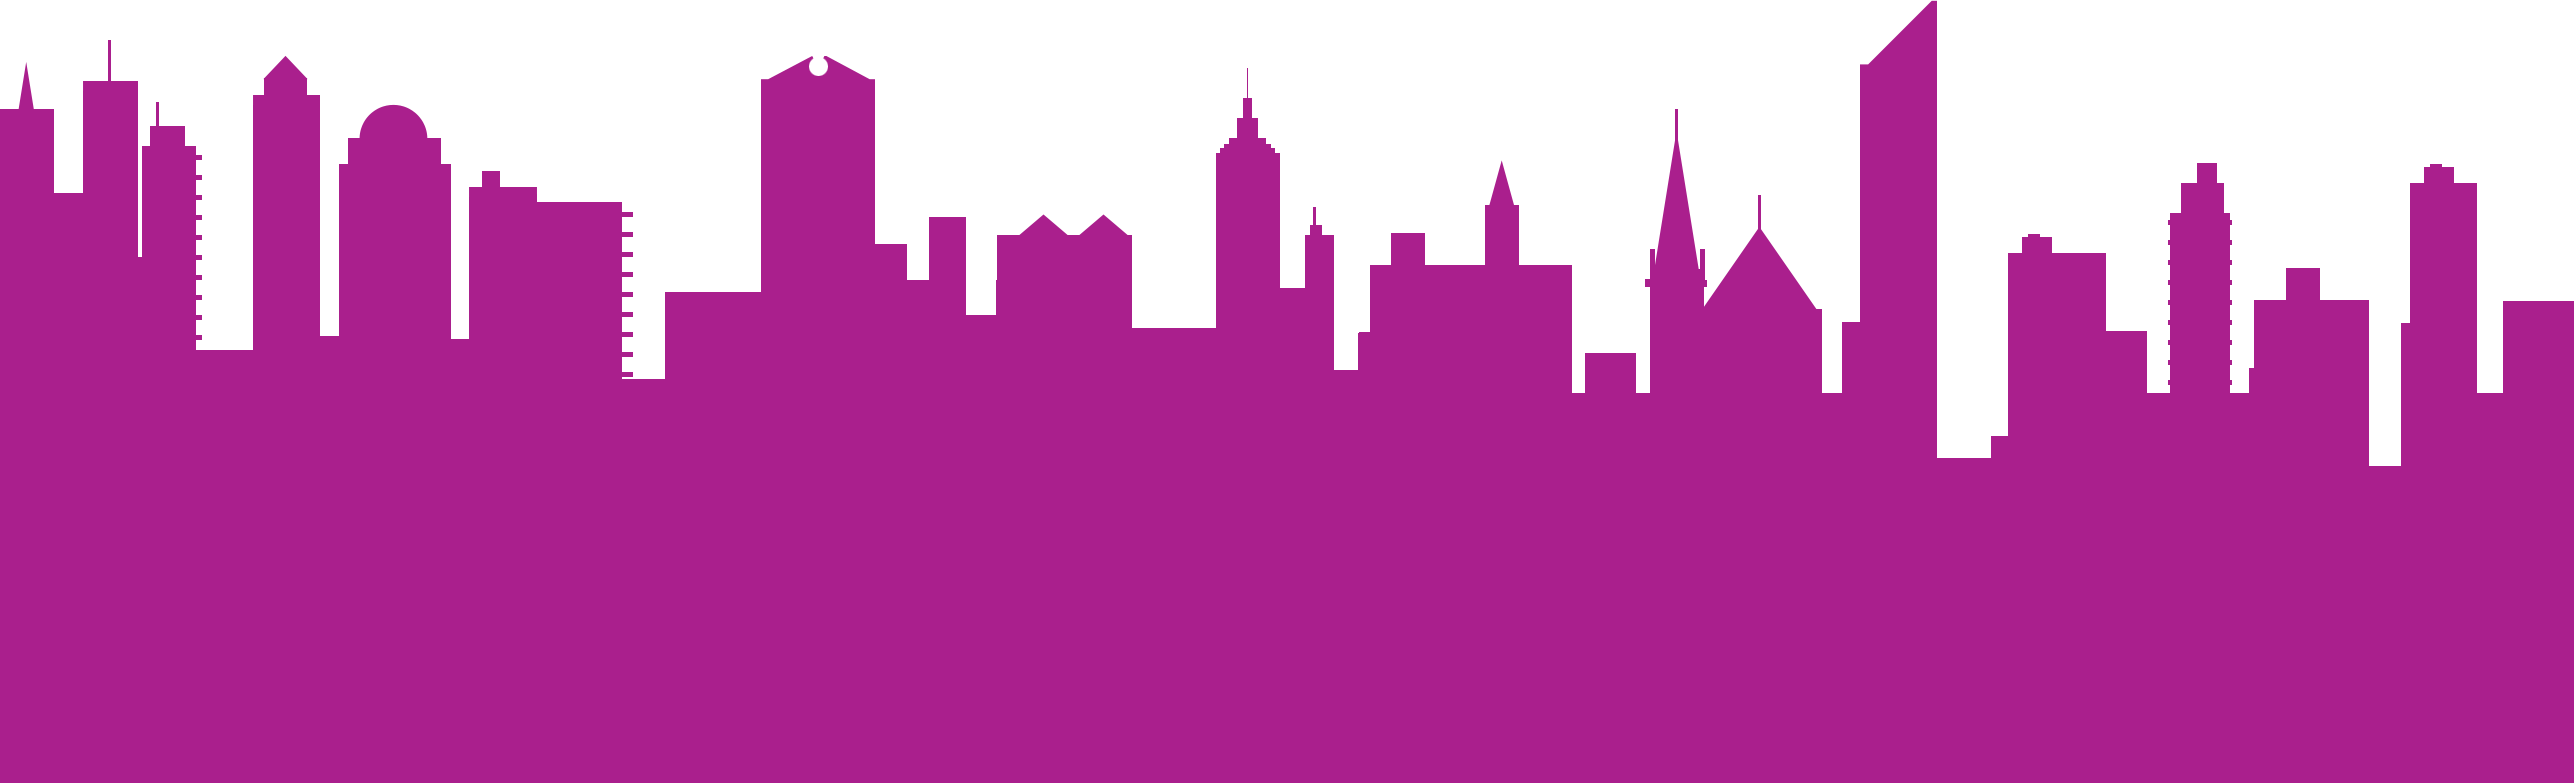 Download New York City Skyline New York Skyline Sex And The City Png Image With No Background Pngkey Com